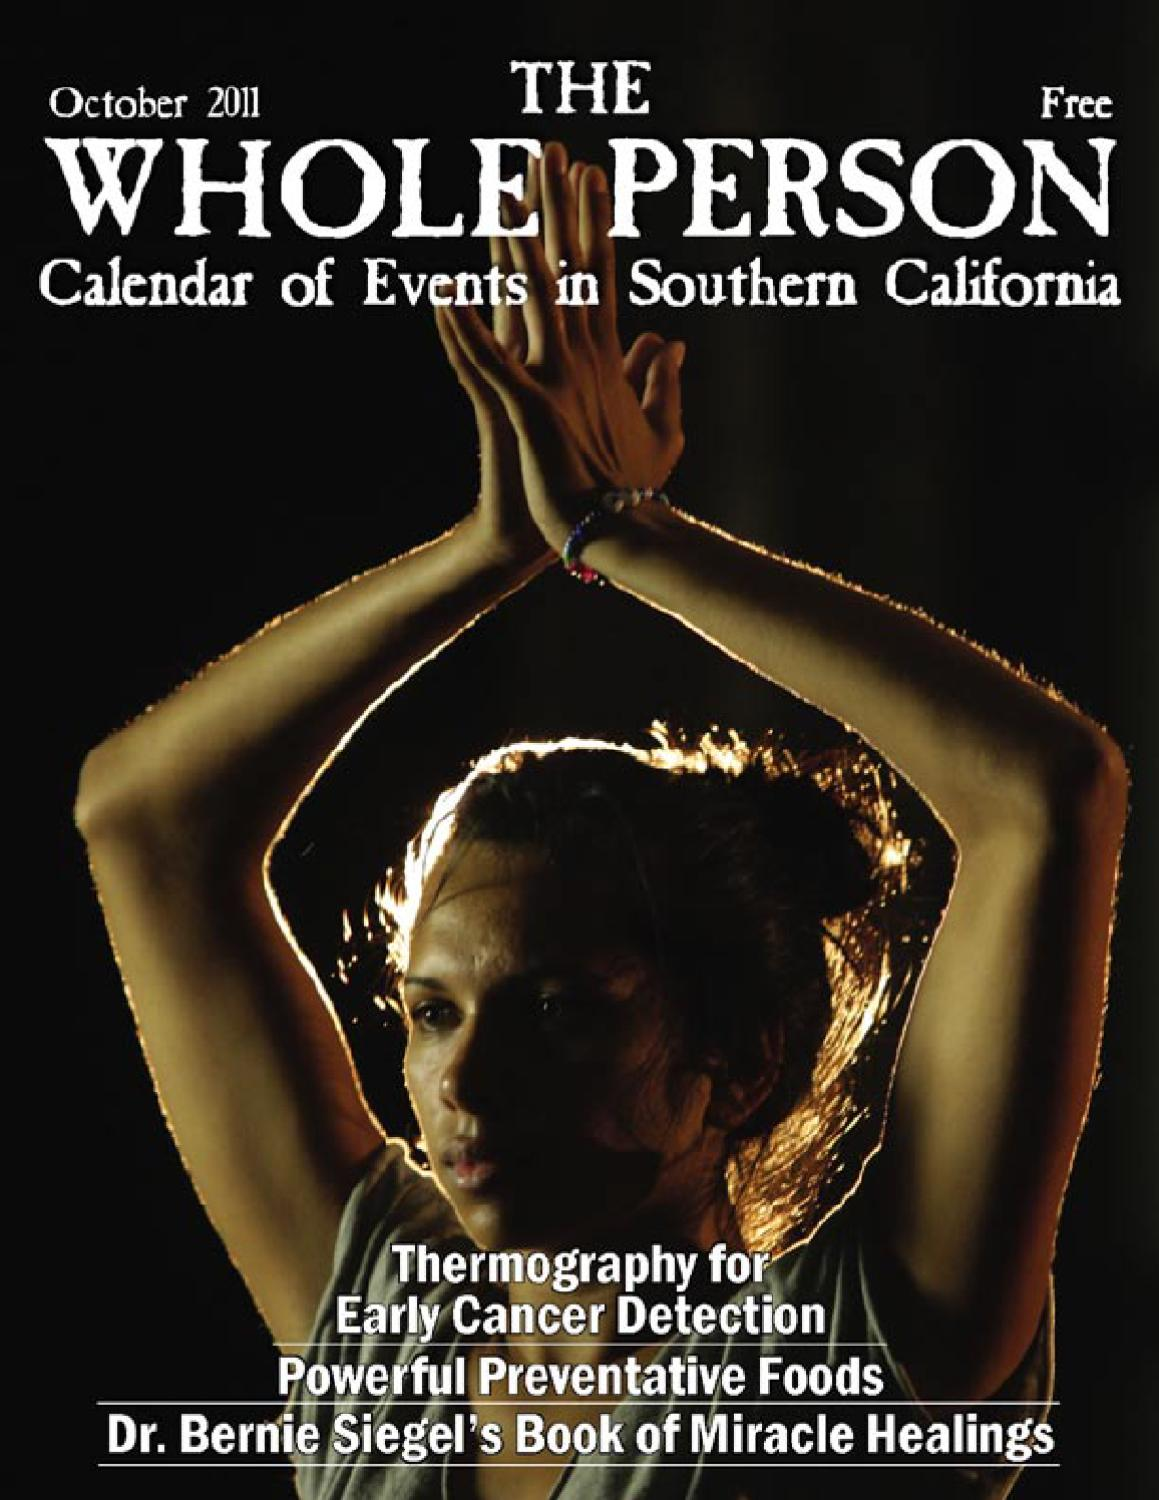 Whole Person Calendar - October 2011 by Whole Person